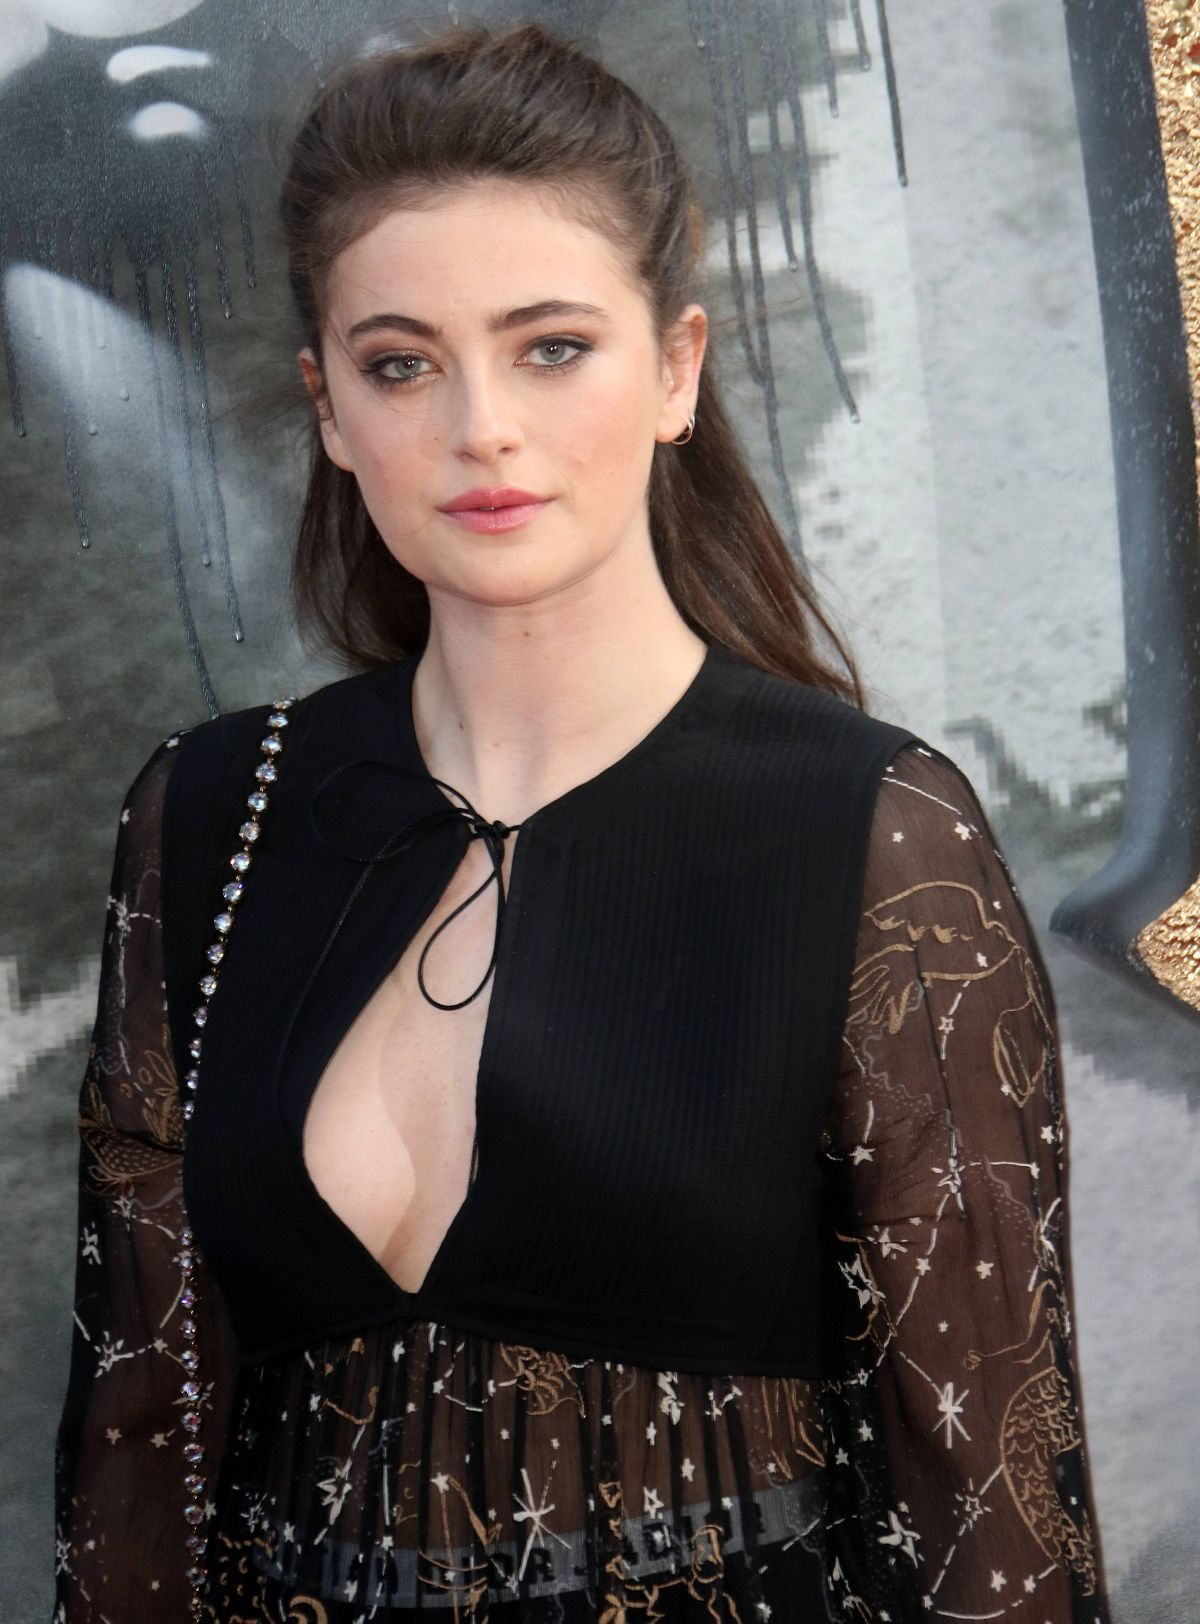 Paparazzi Millie Brady naked (33 photos), Feet